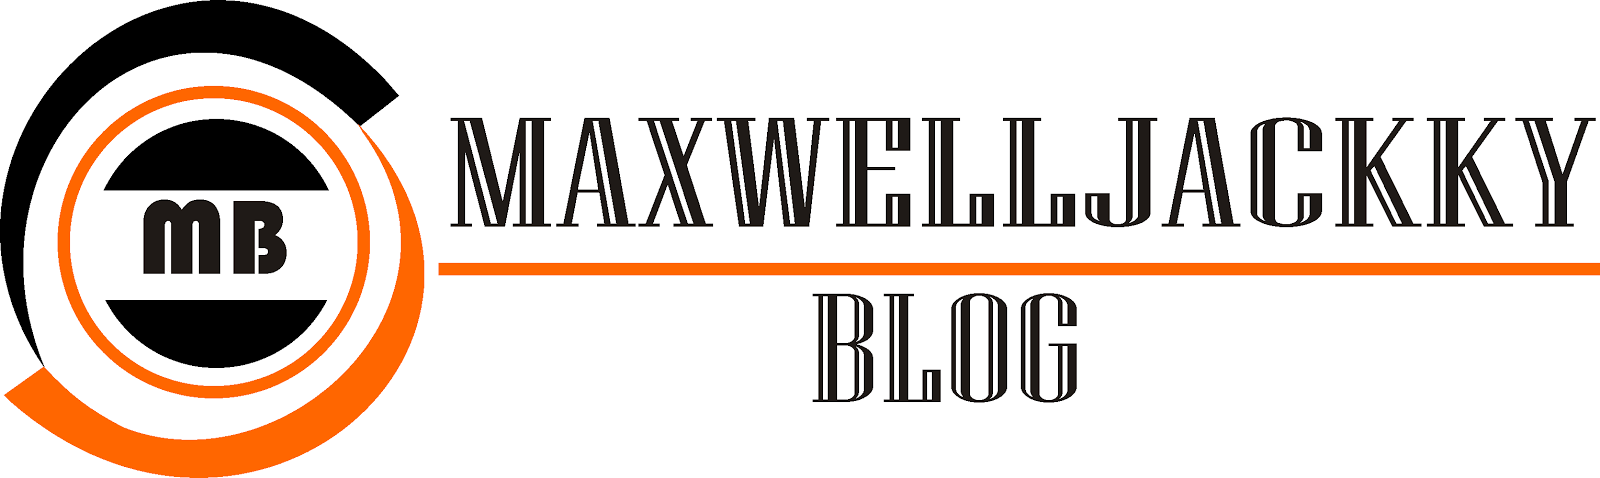 Welcome to Maxwelljackky'sblog